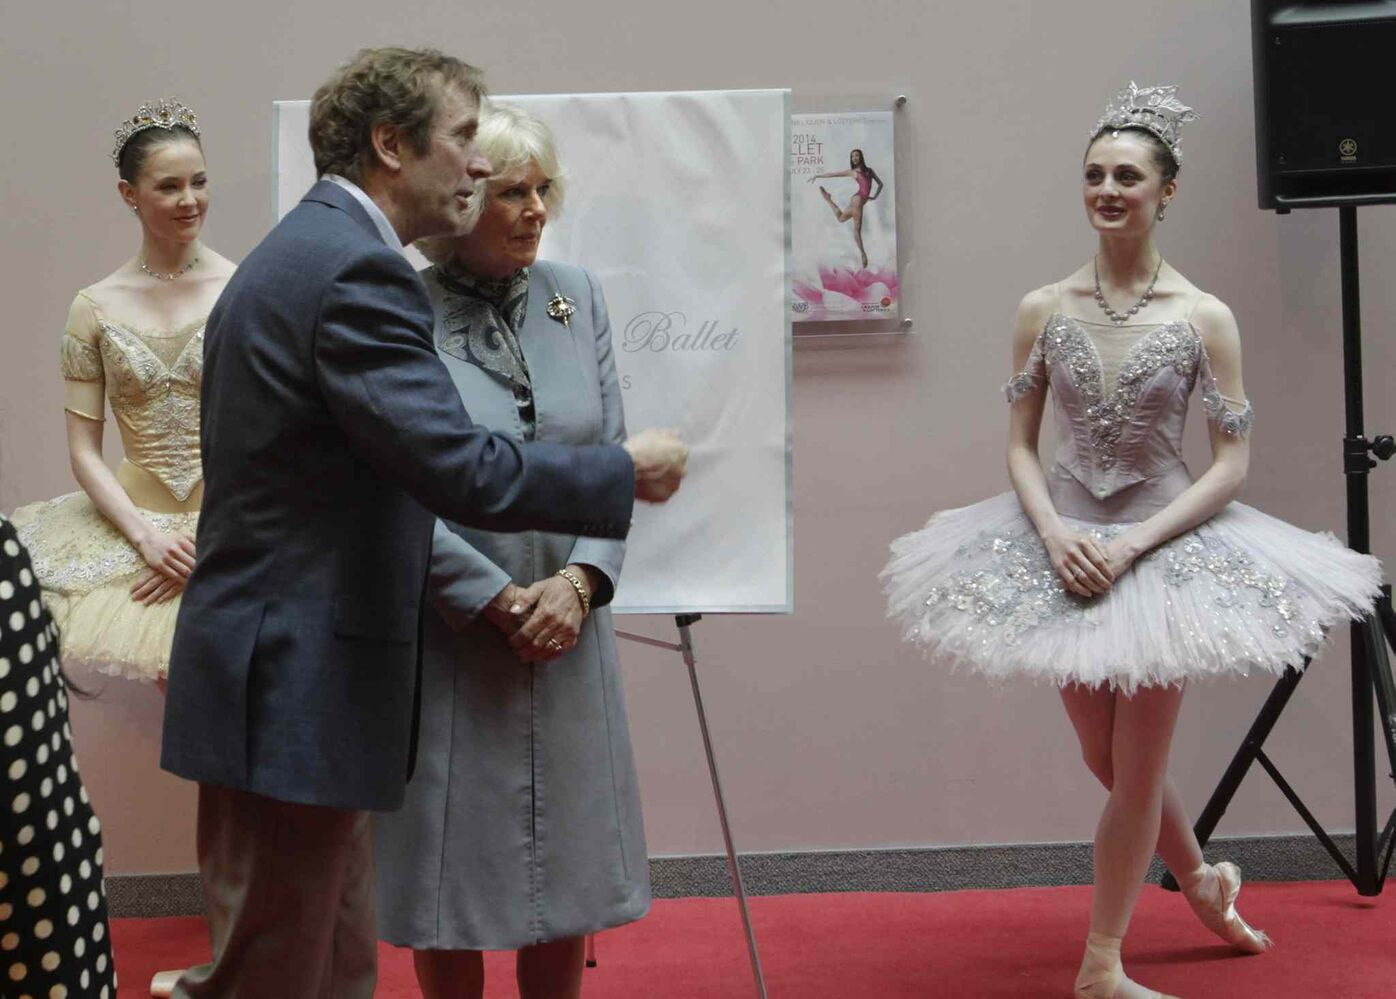 Camilla, Duchess of Cornwall with RWB Artistic Director Andre Lewis between dancers Katie Bonnell (left) and Anna O'Callaghan at Canada's Royal Winnipeg Ballet tour.